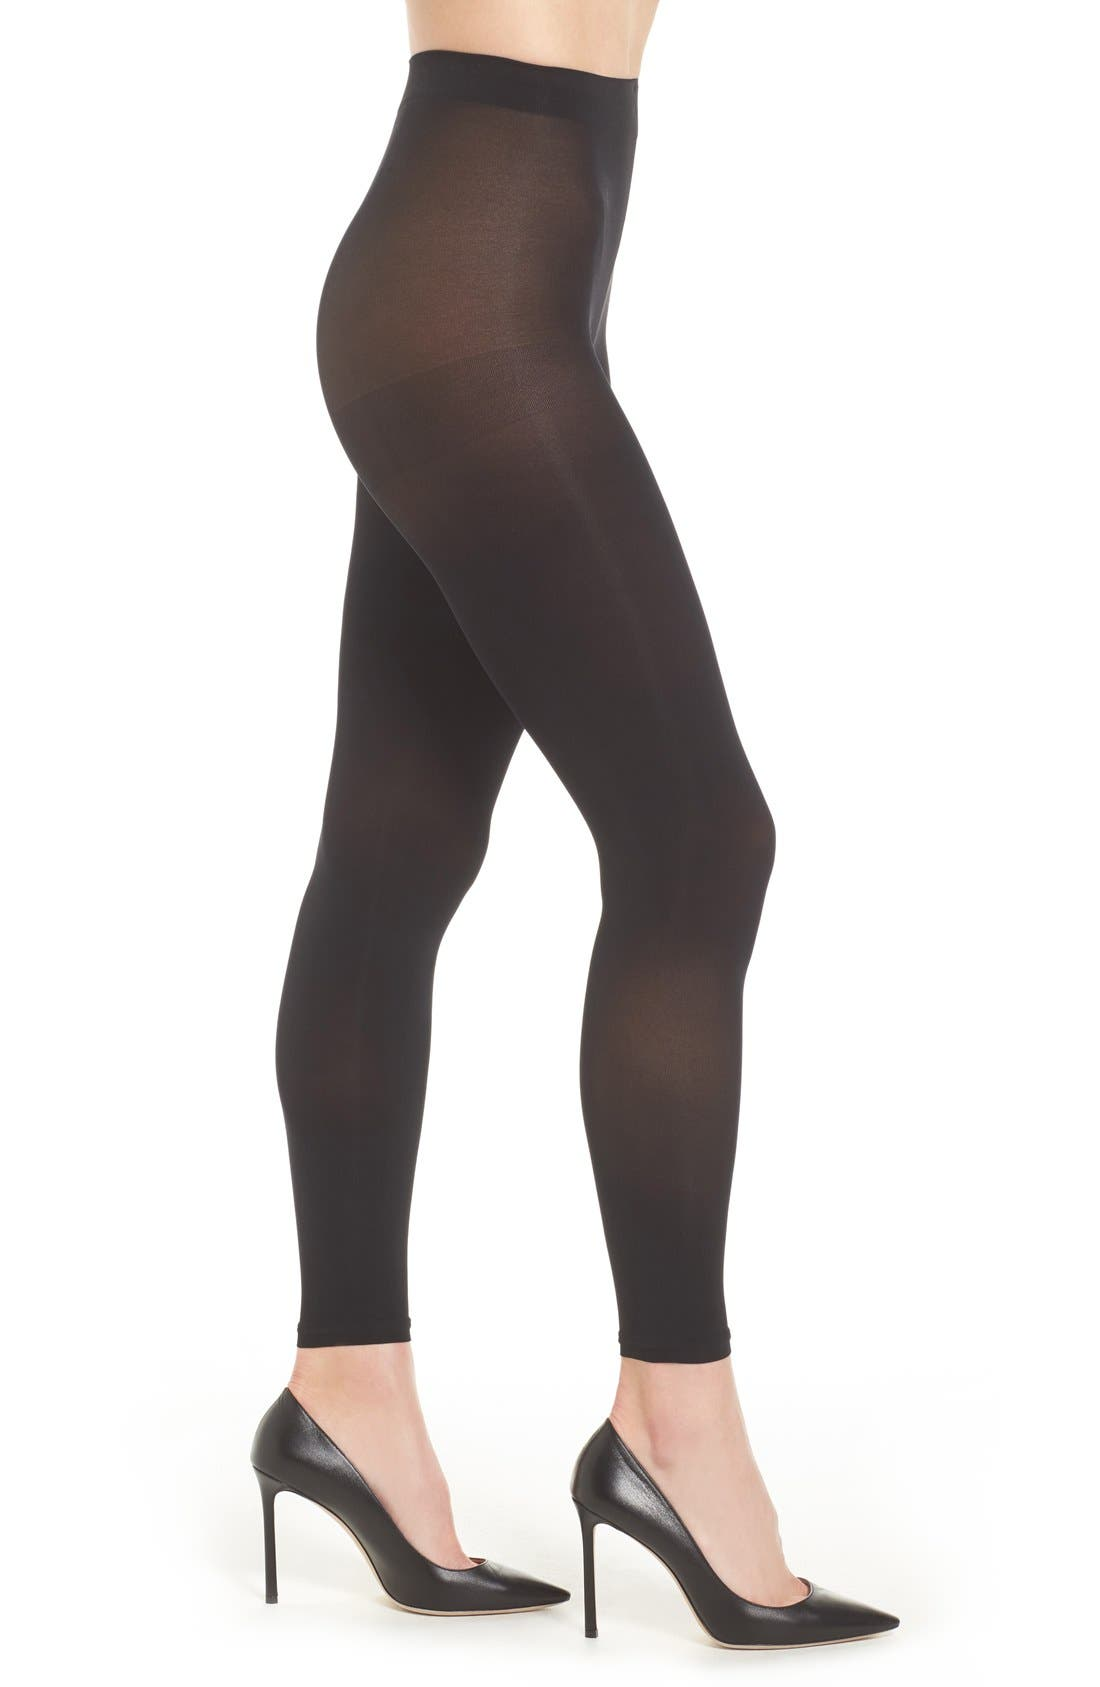 'Everyday' Footless Tights,                         Main,                         color, Black